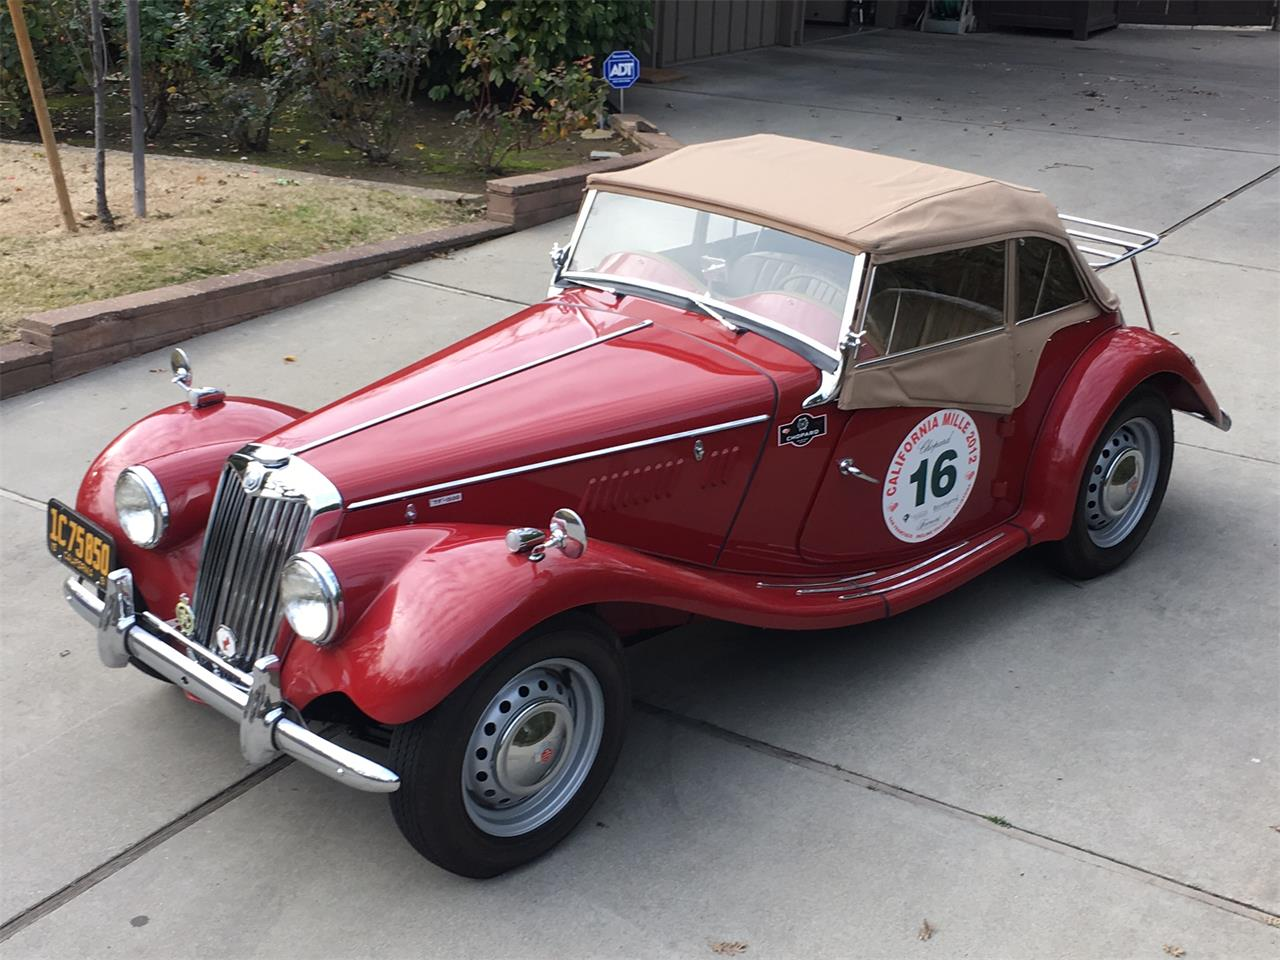 Cars For Sale In Stockton Ca: 1954 MG TF For Sale